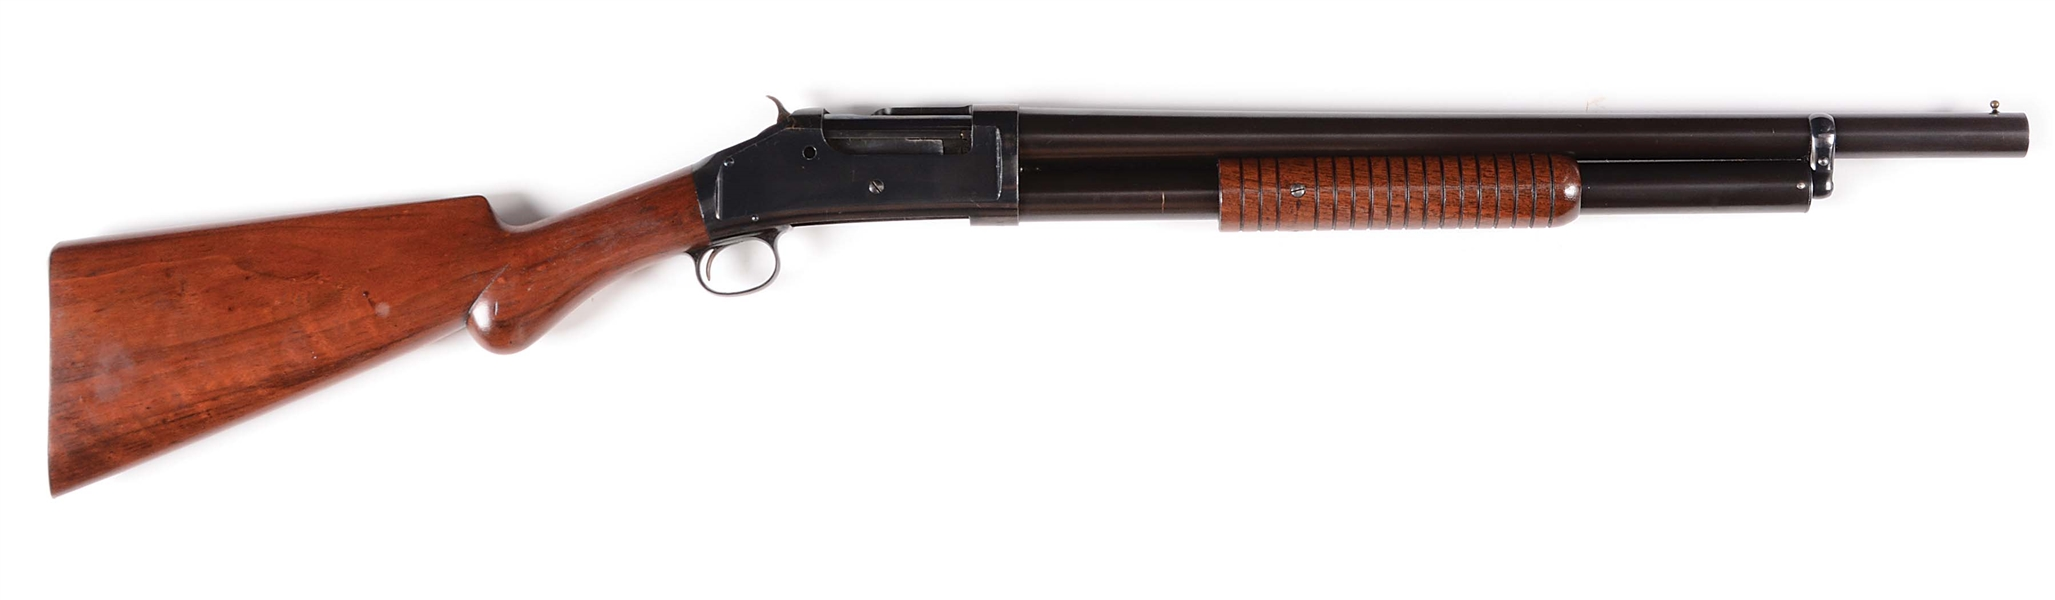 (A) EXCEPTIONAL WINCHESTER MODEL 1893 RIOT SHOTGUN ONE OF CONSECUTIVE PAIR